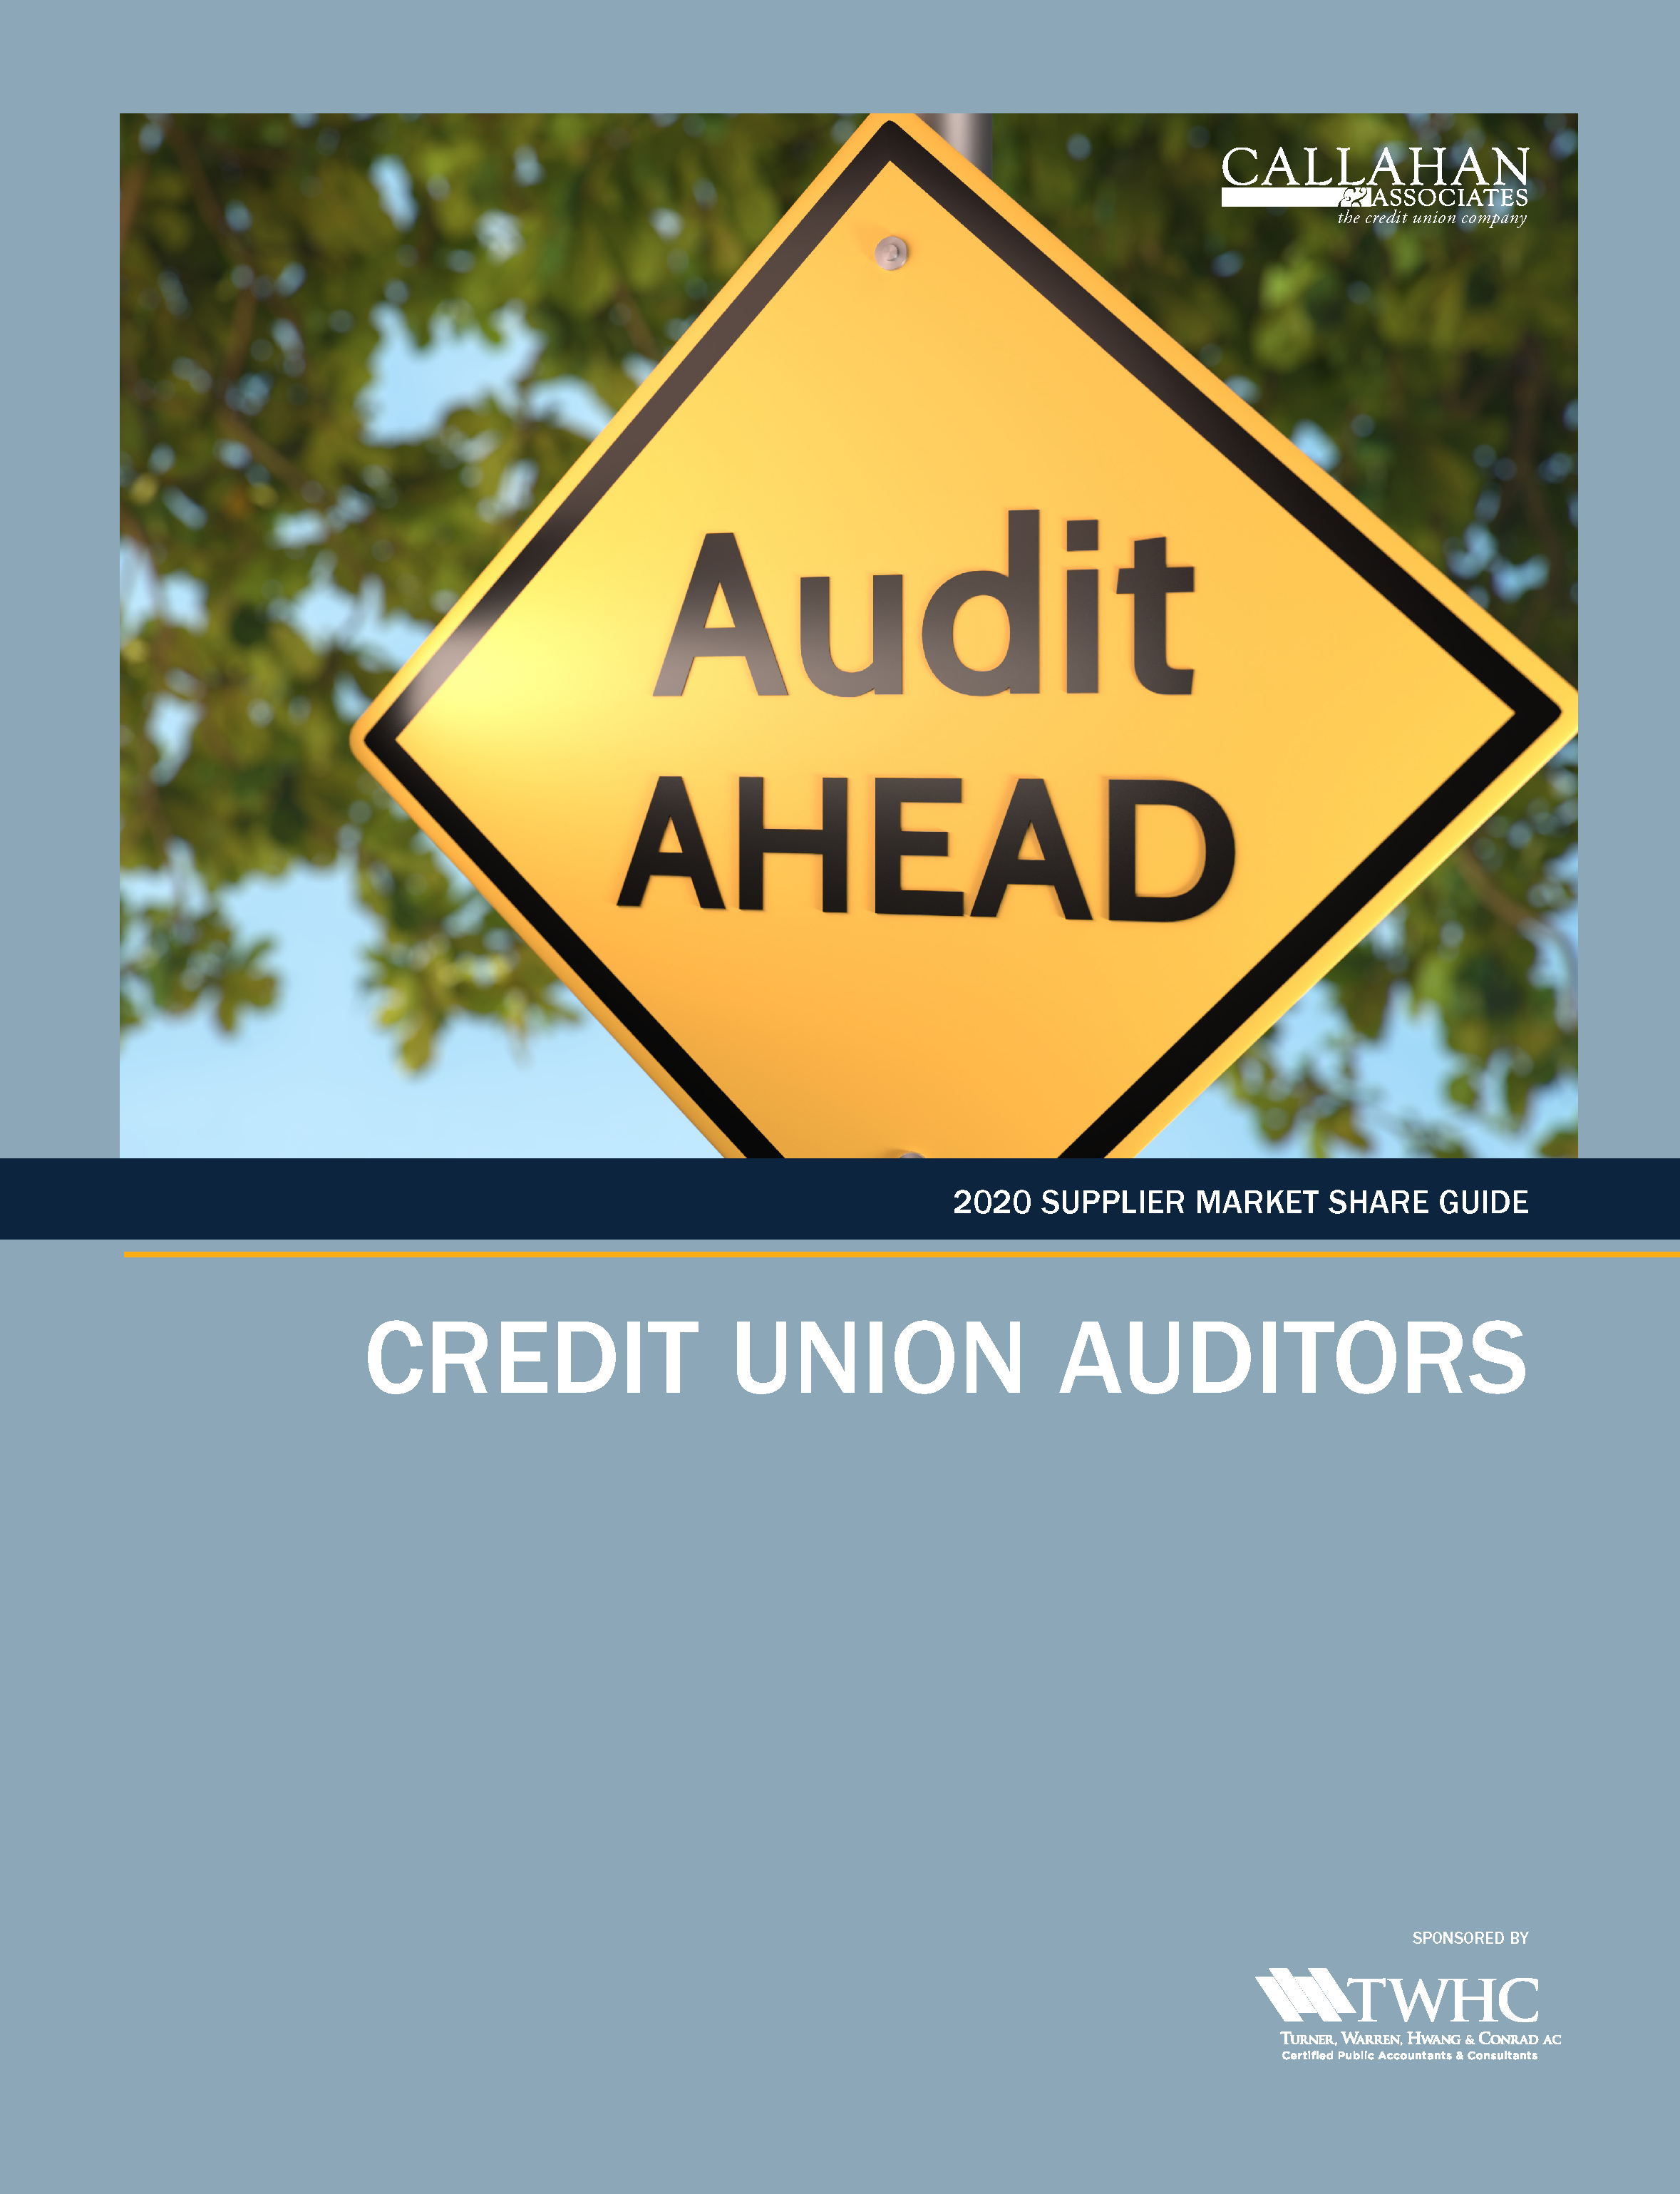 2020 Supplier Market Share Guide: Credit Union Auditors